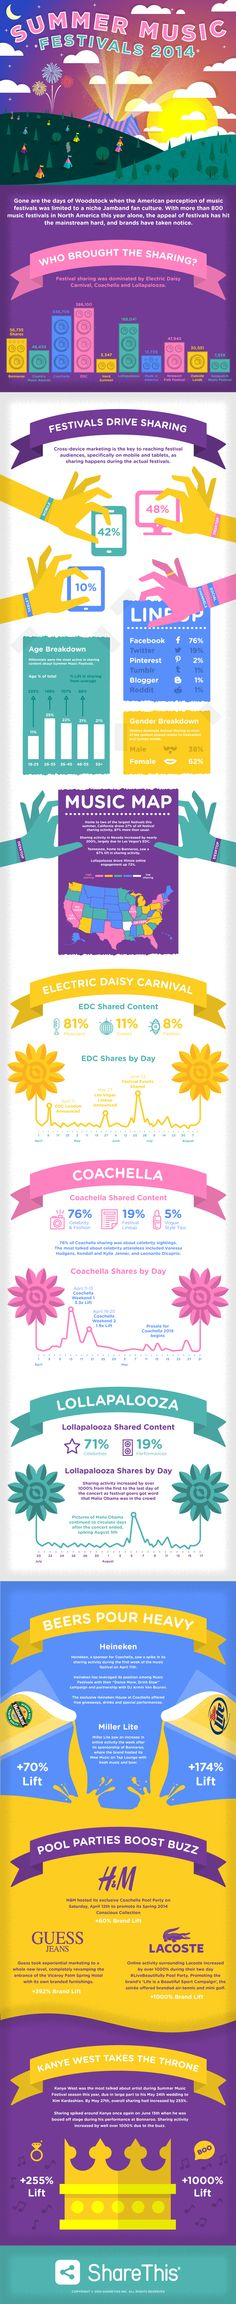 Our Summer Music Festival infographic has surprising insights on @lollapalooza @coachella @Bonnaroo #EDC and more! http://shar.es/1a1eOY